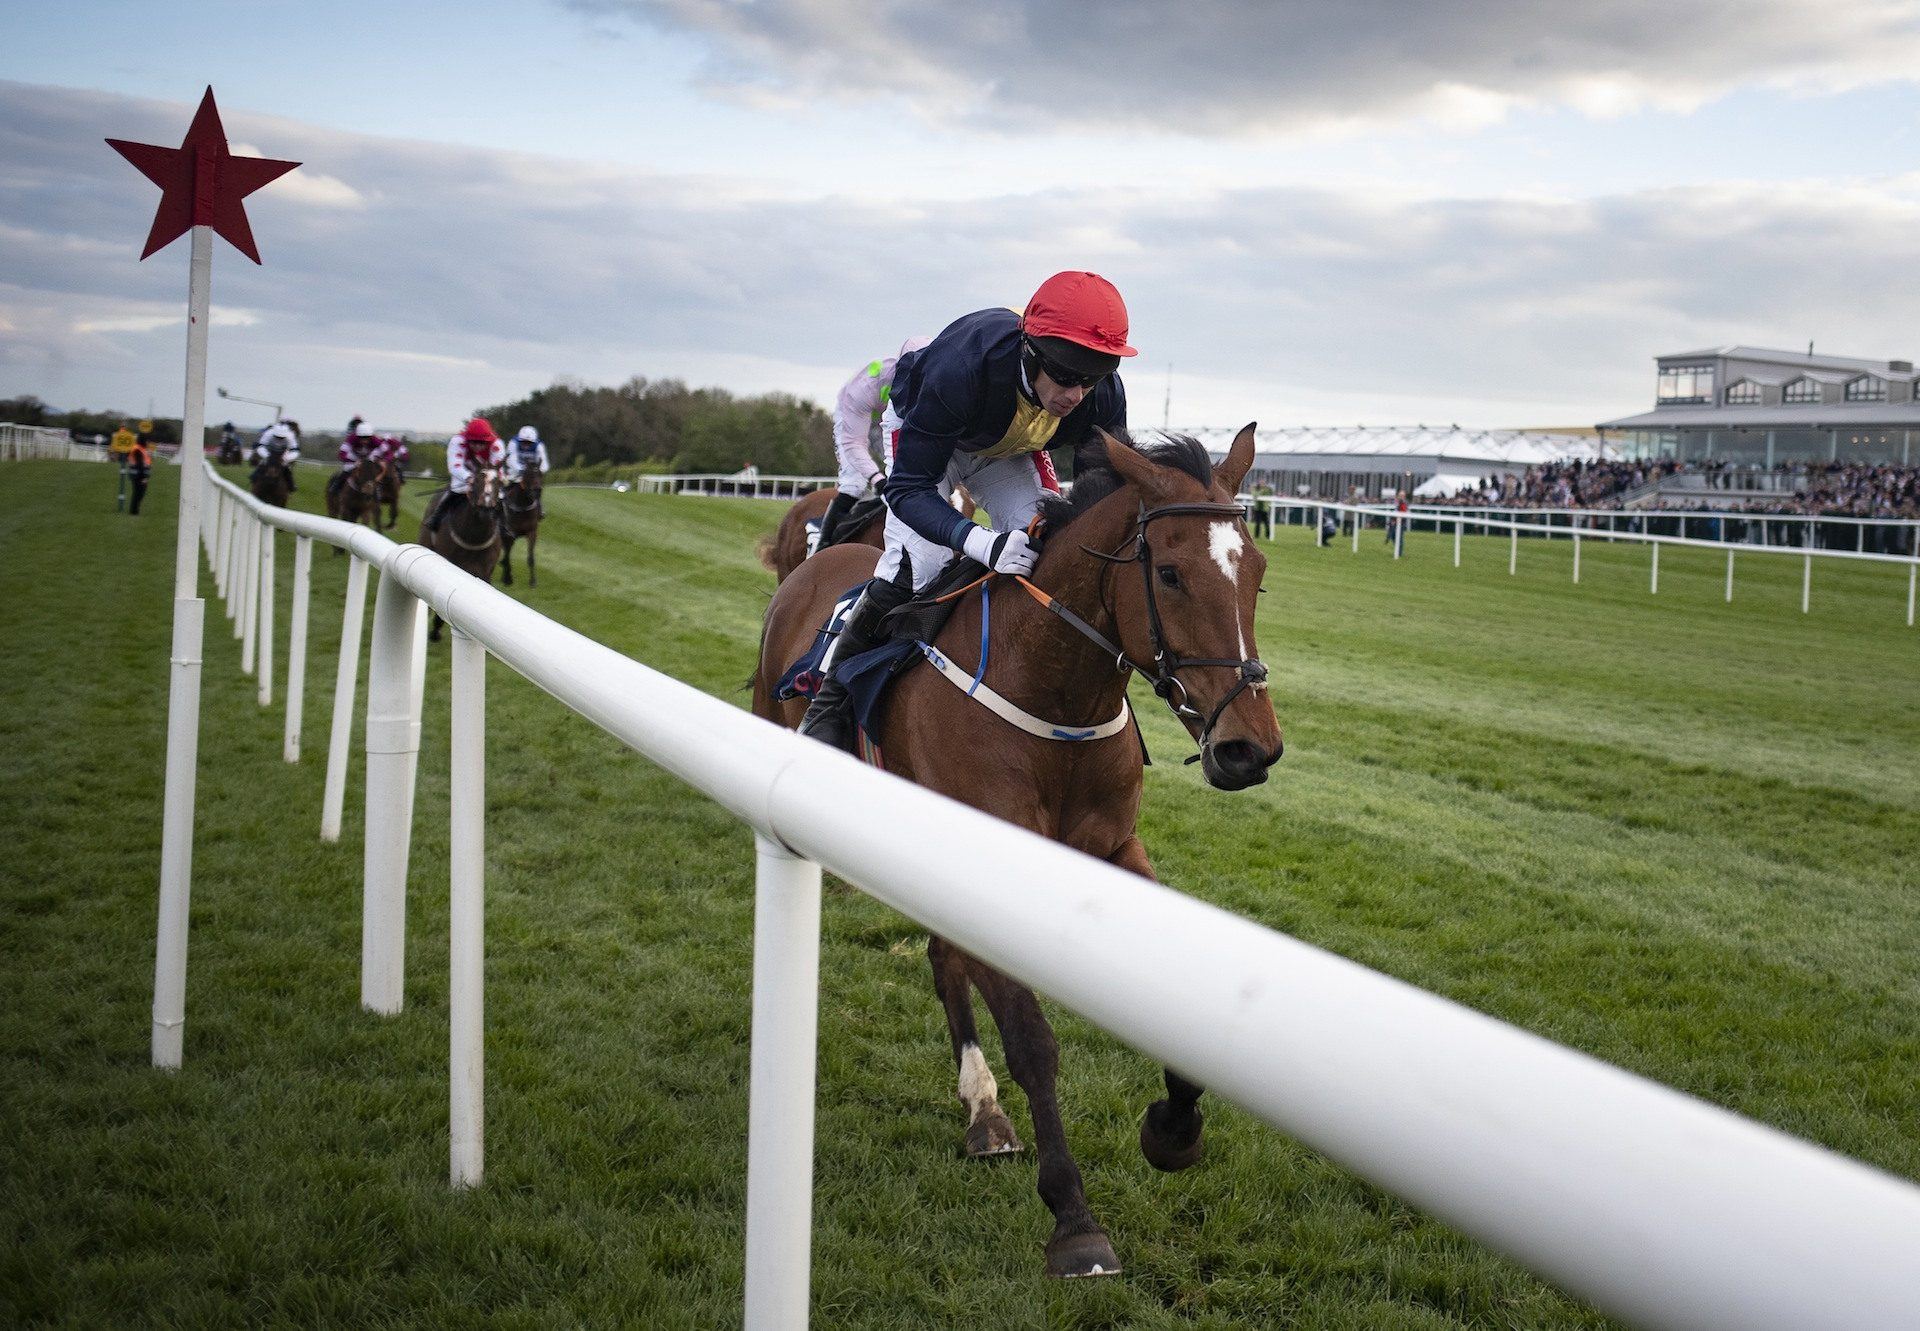 Longhouse Poet (Yeats) Wins At  Punchestown